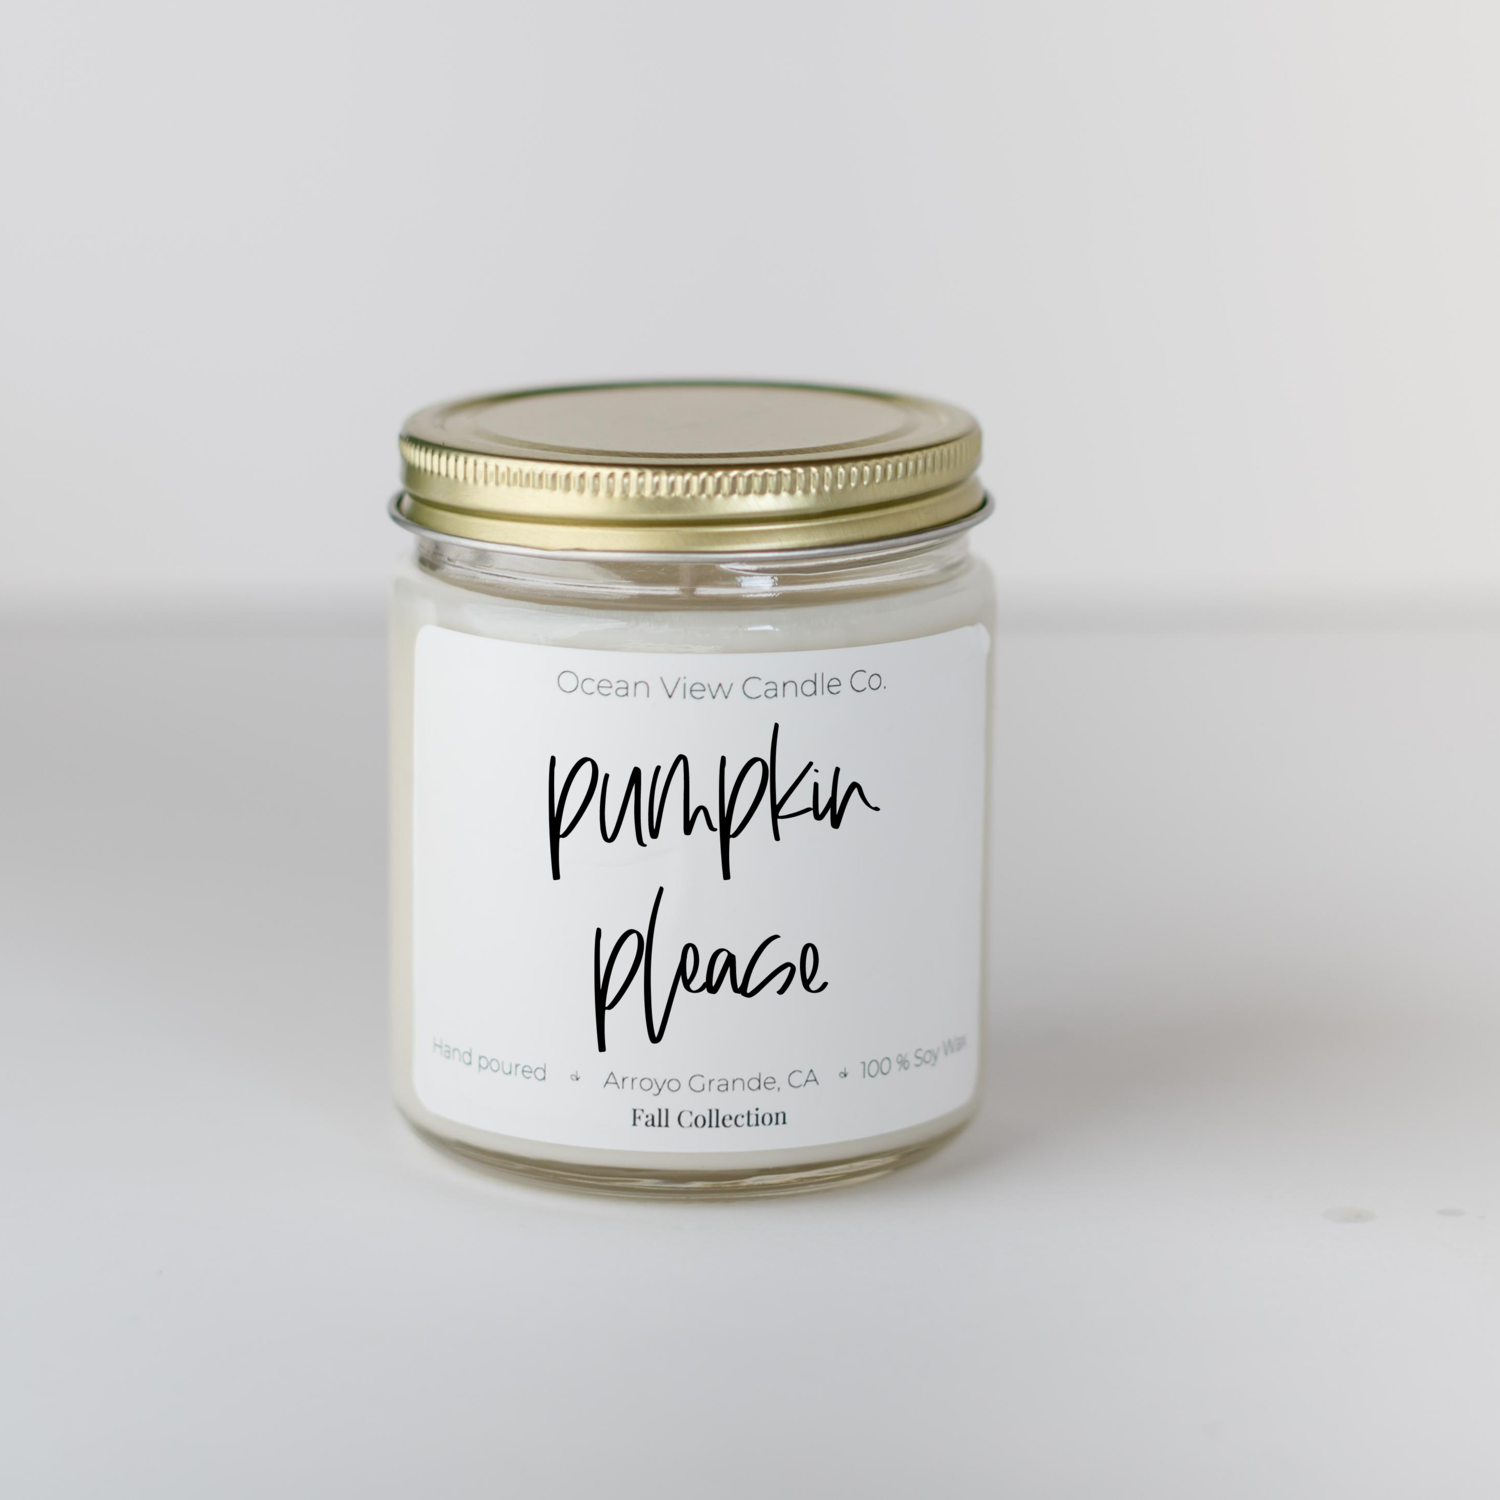 Vanilla Pumpkin Pie Soy Wax Scented Candle